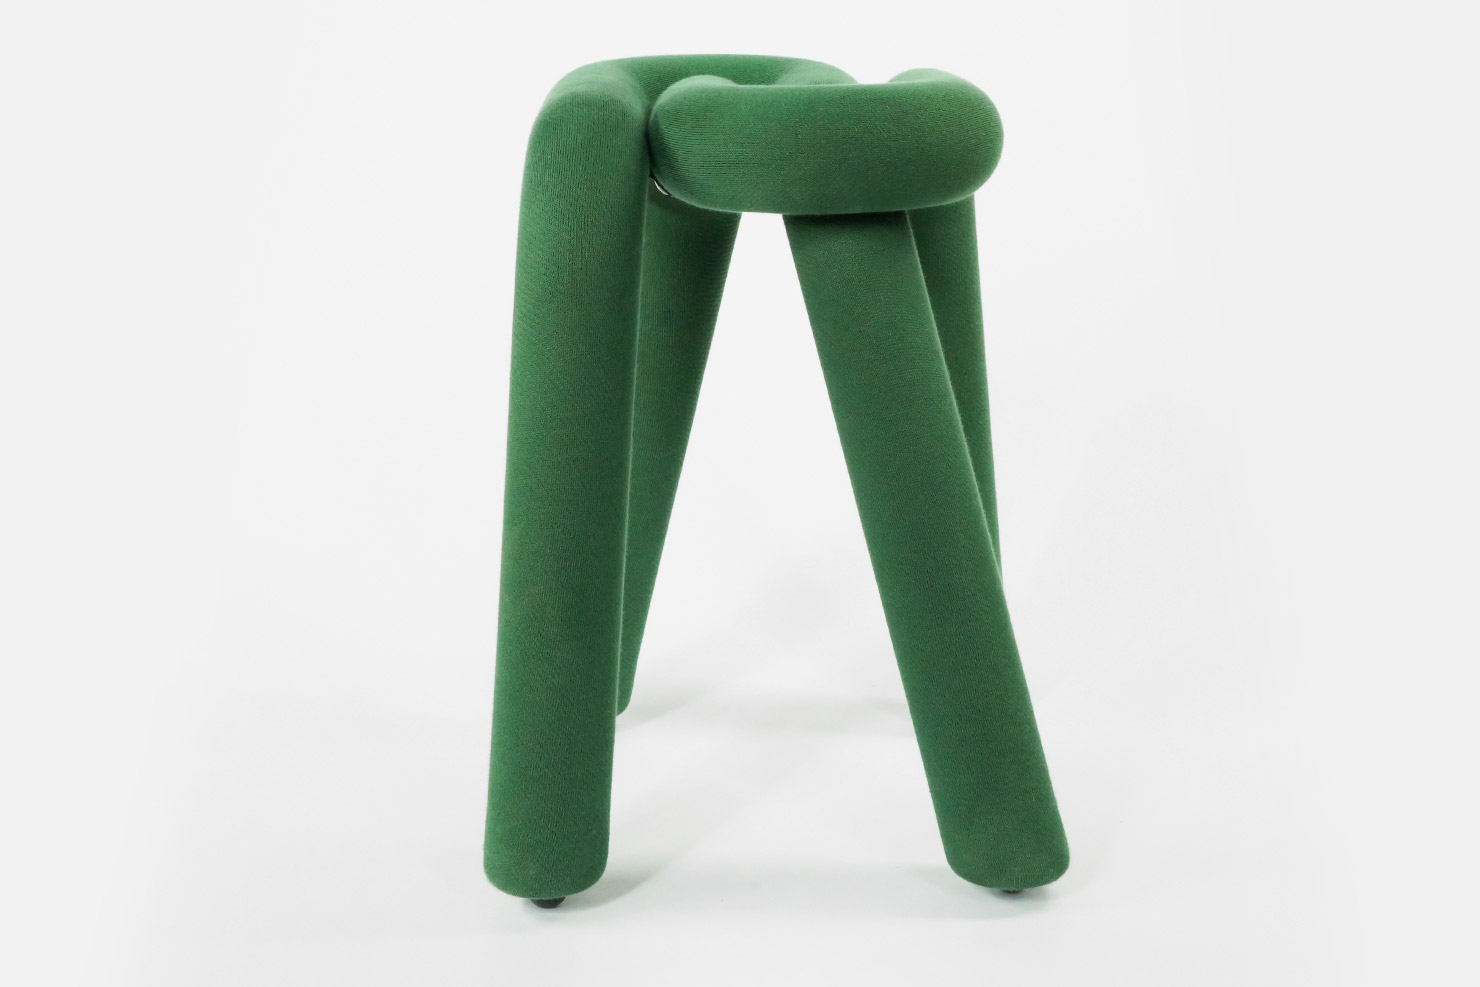 BIG GAME BOLD STOOL FOREST GREEN - S.A.R.L. DOMESTIC MOUSTACHE